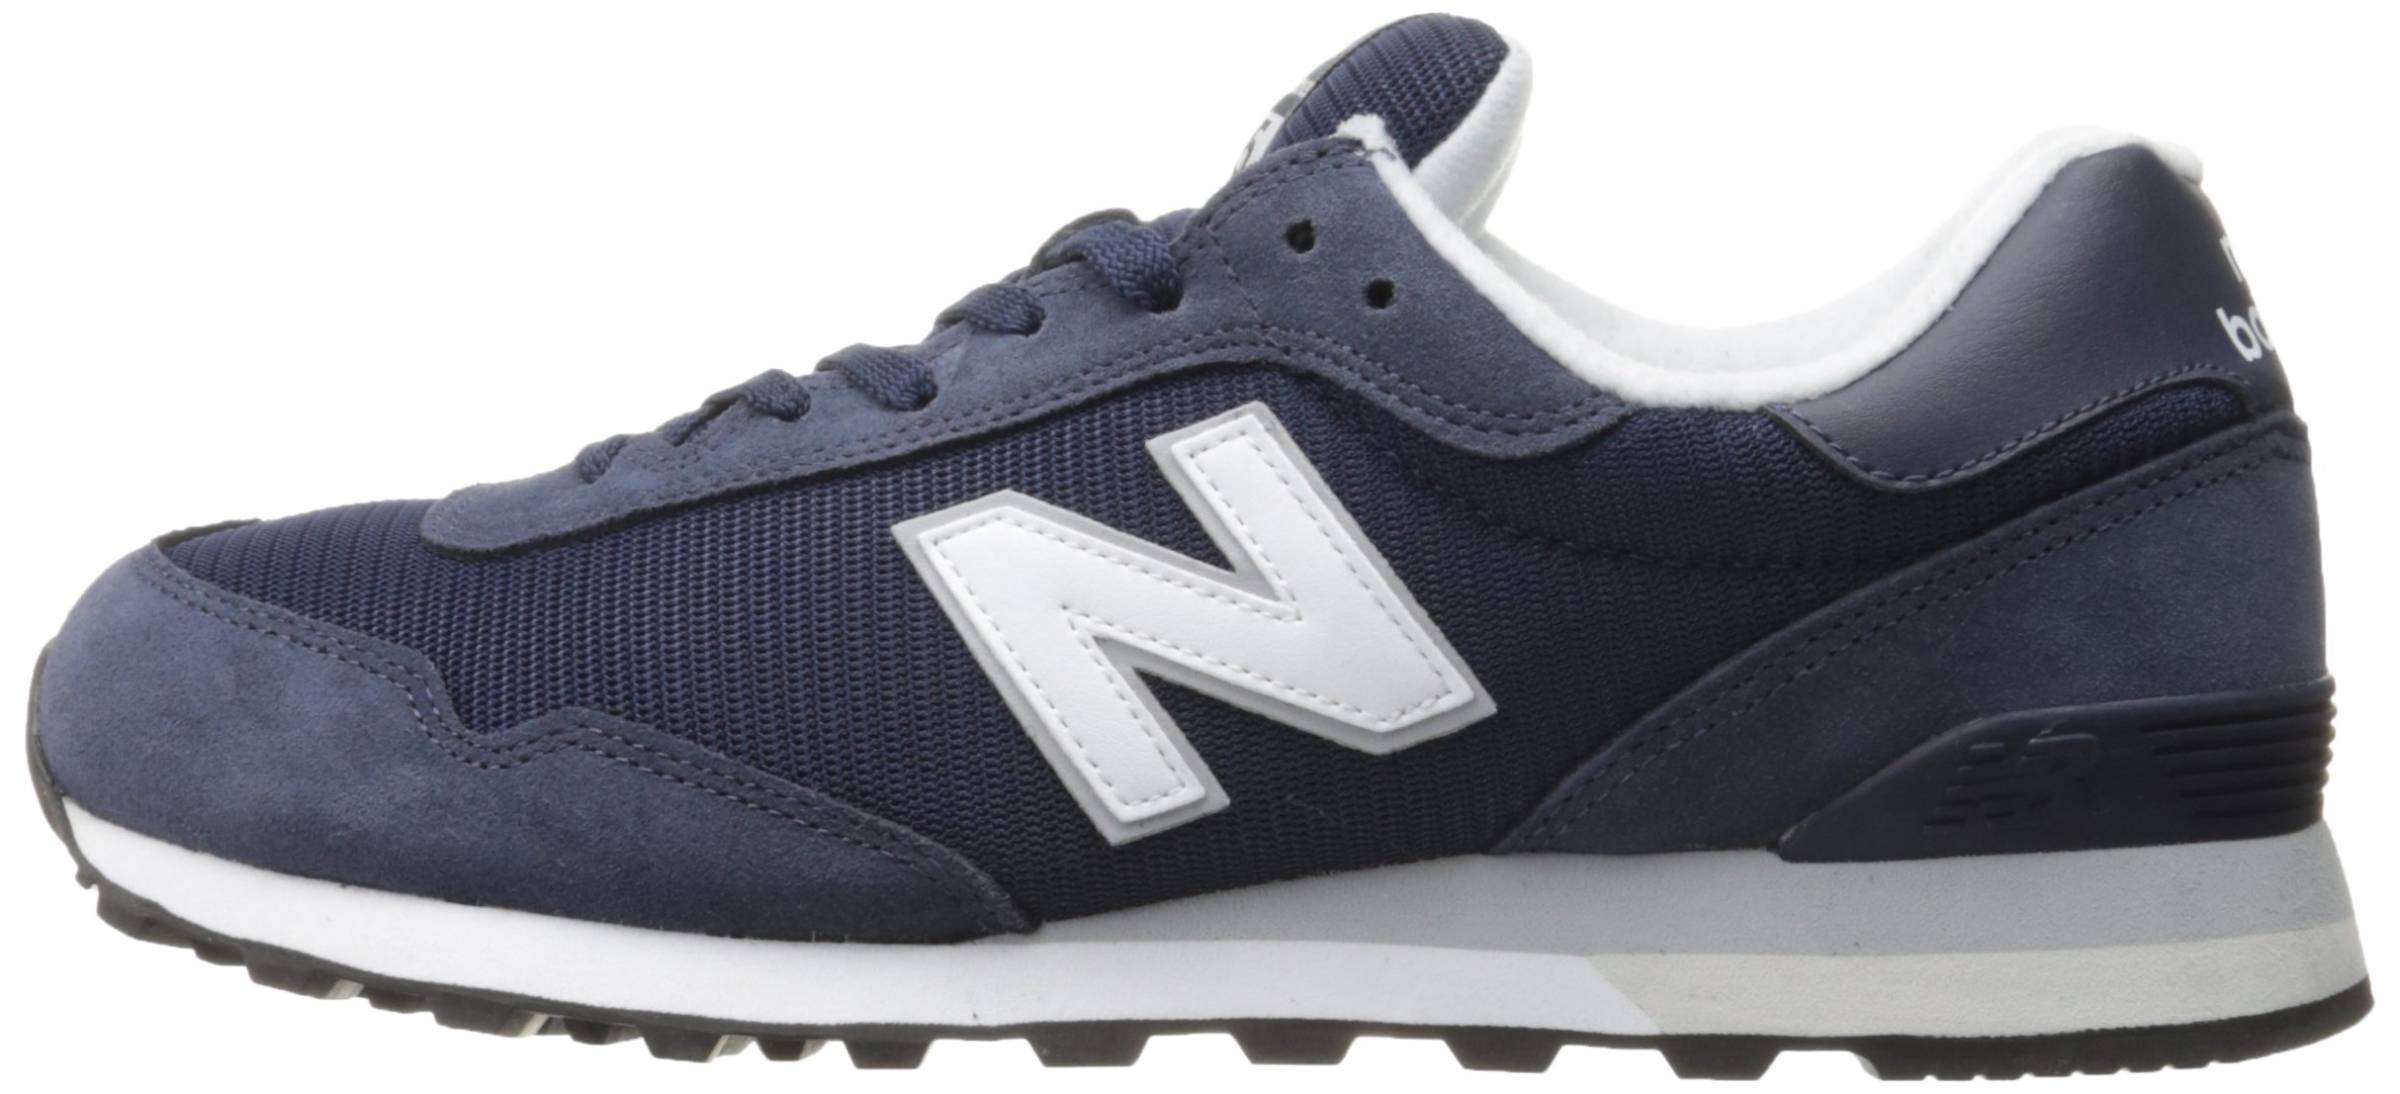 New Balance 515 sneakers in 10 colors (only $35) | RunRepeat